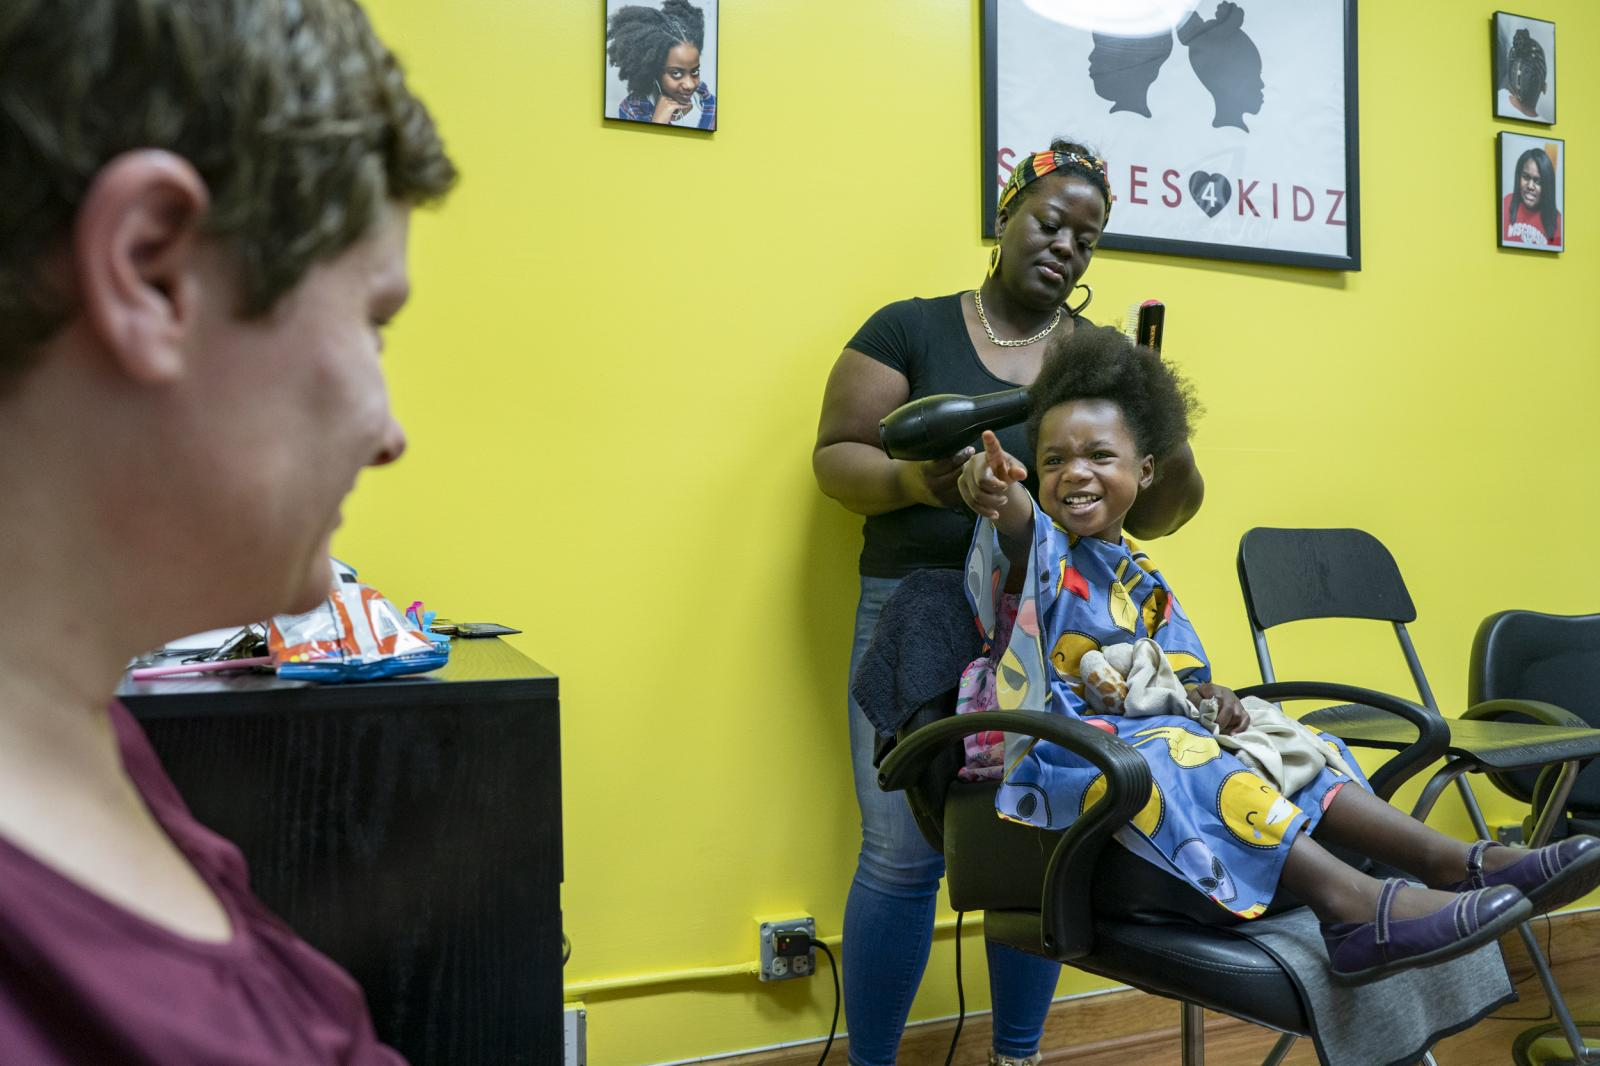 Daisy Feidt watches her daughter Ana Tow, 4, as she gets her hair braided by Shavonne Patterson at Styles 4 Kidz in Oak Park on May 25, 2019. Styles 4 Kidz provides hair care education and styling services for African American kids in transracial adoptive families and foster care.